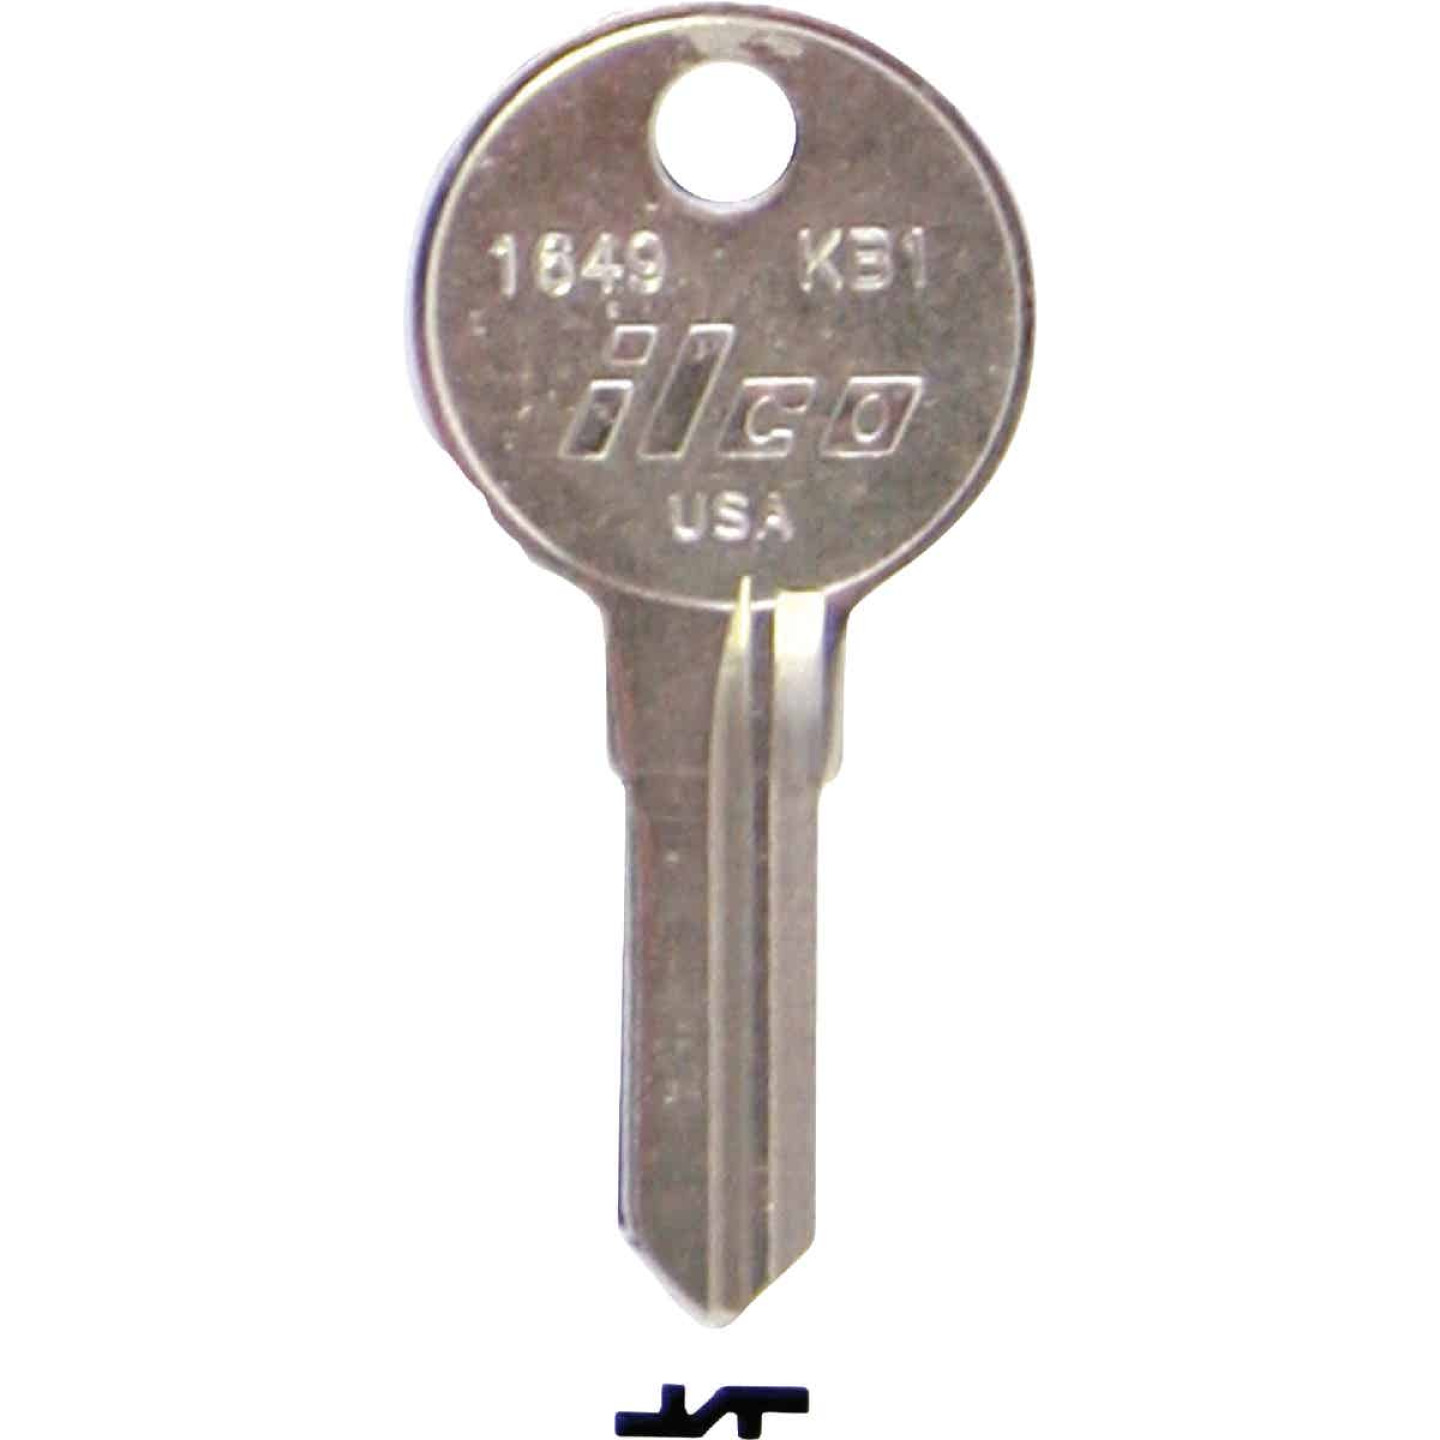 ILCO Kimball Nickel Plated File Cabinet Key, KB1 (10-Pack) Image 1